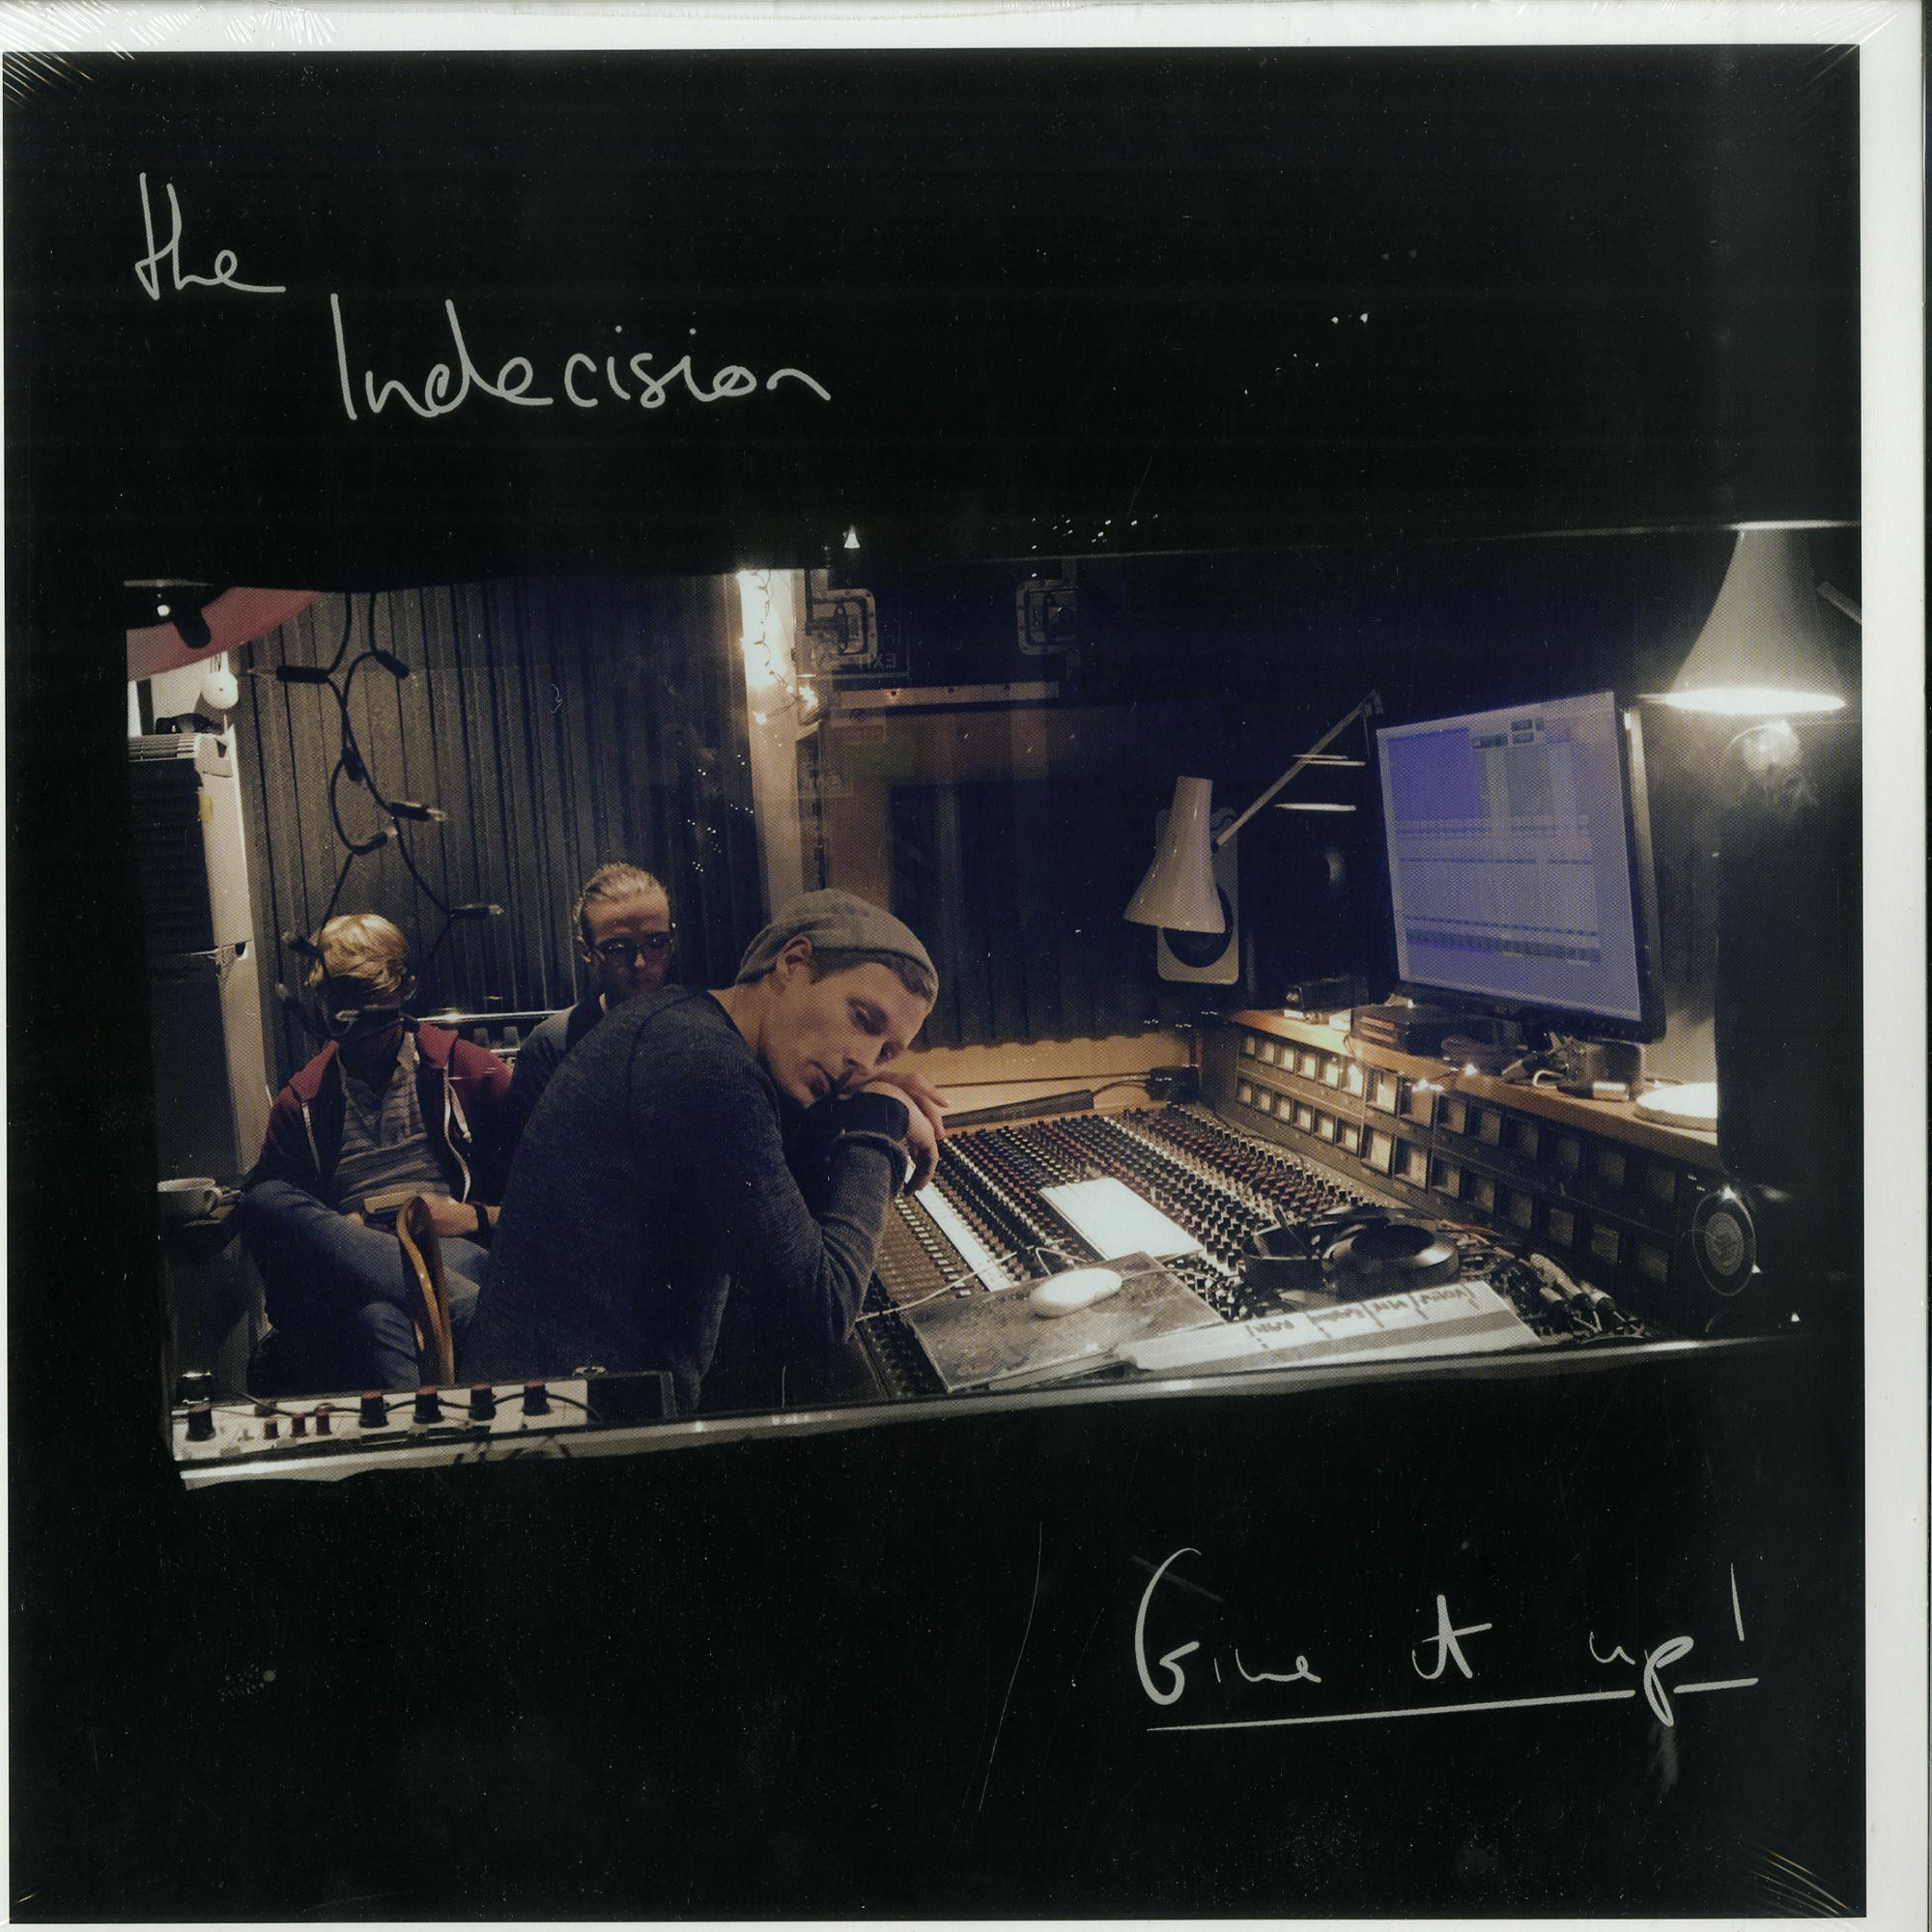 The Indecision - GIVE IT UP!